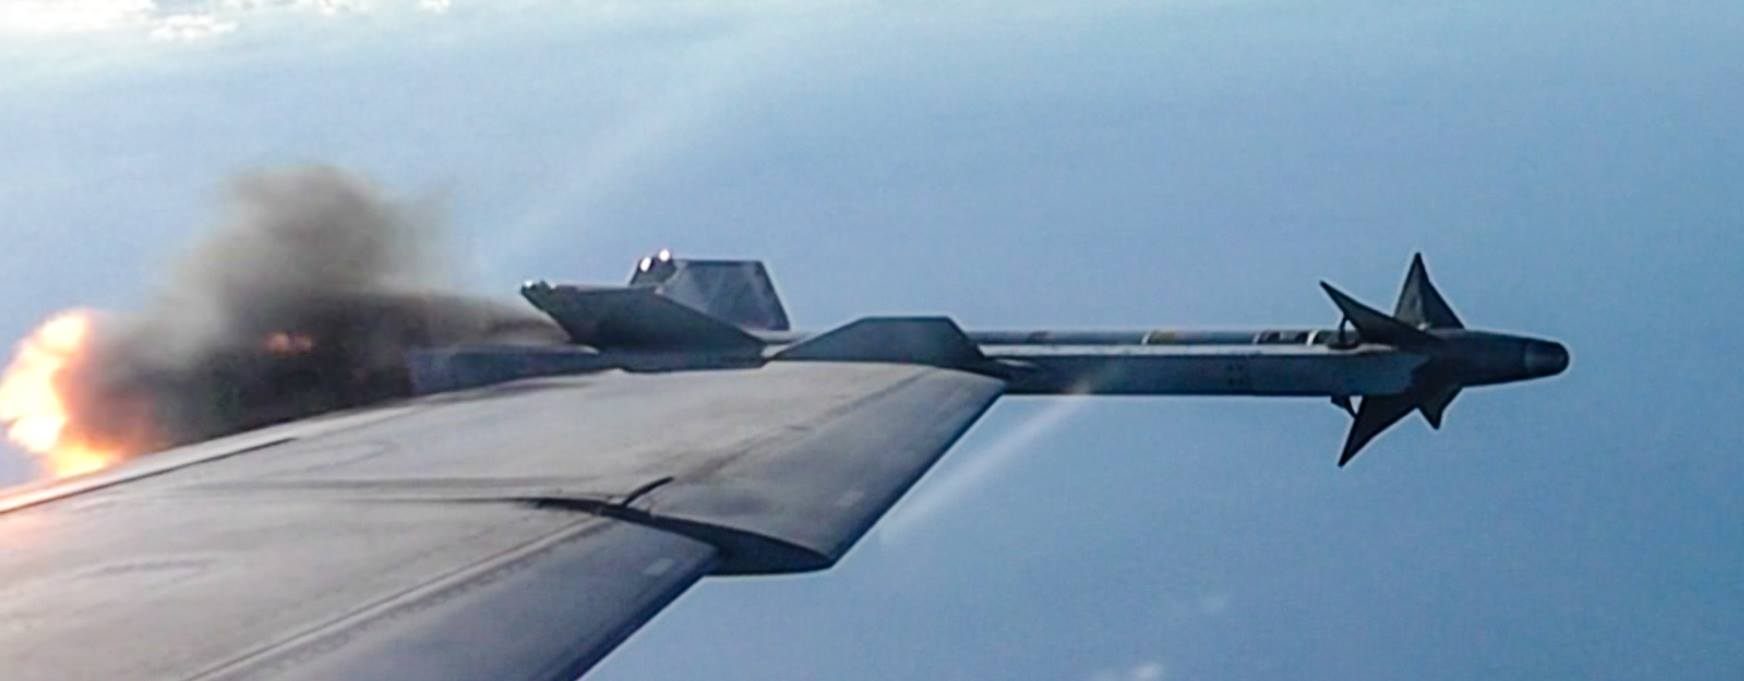 An air-to-air Sidewinder missile launch, just as it starts leaving the wing